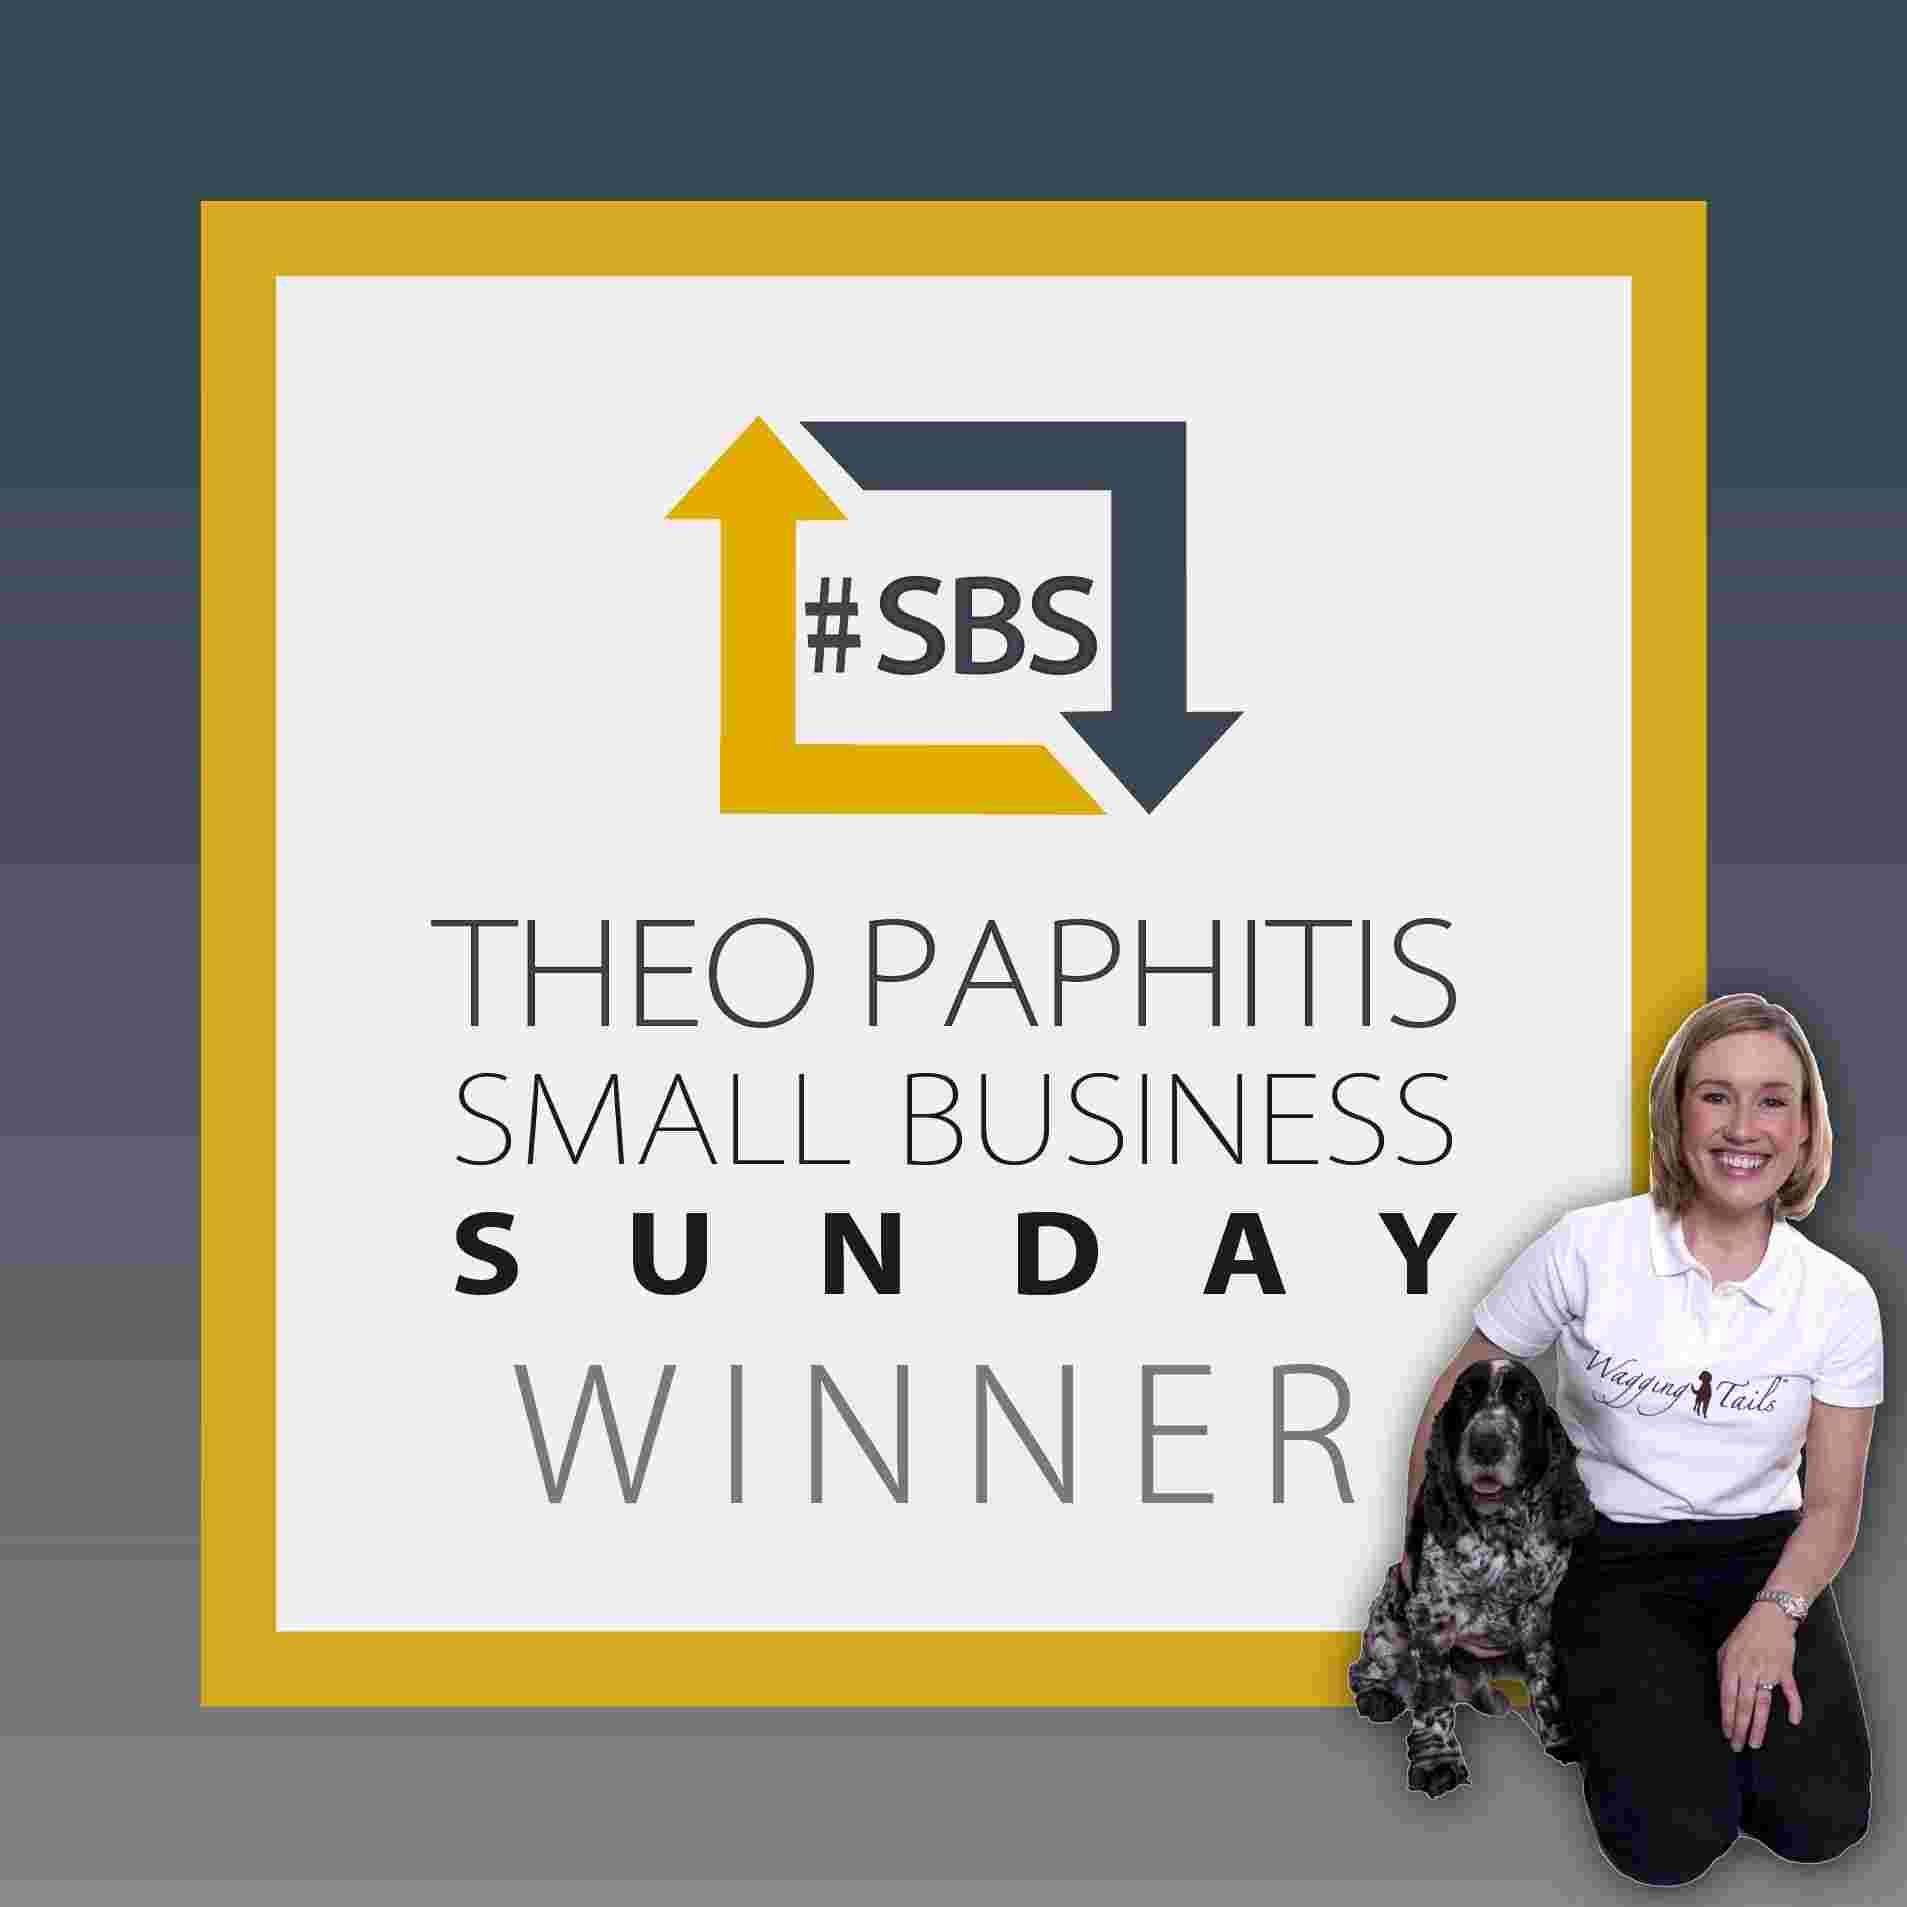 Lisa Suswain and her dog Bailey with Theo Paphitis's #SBS logo.